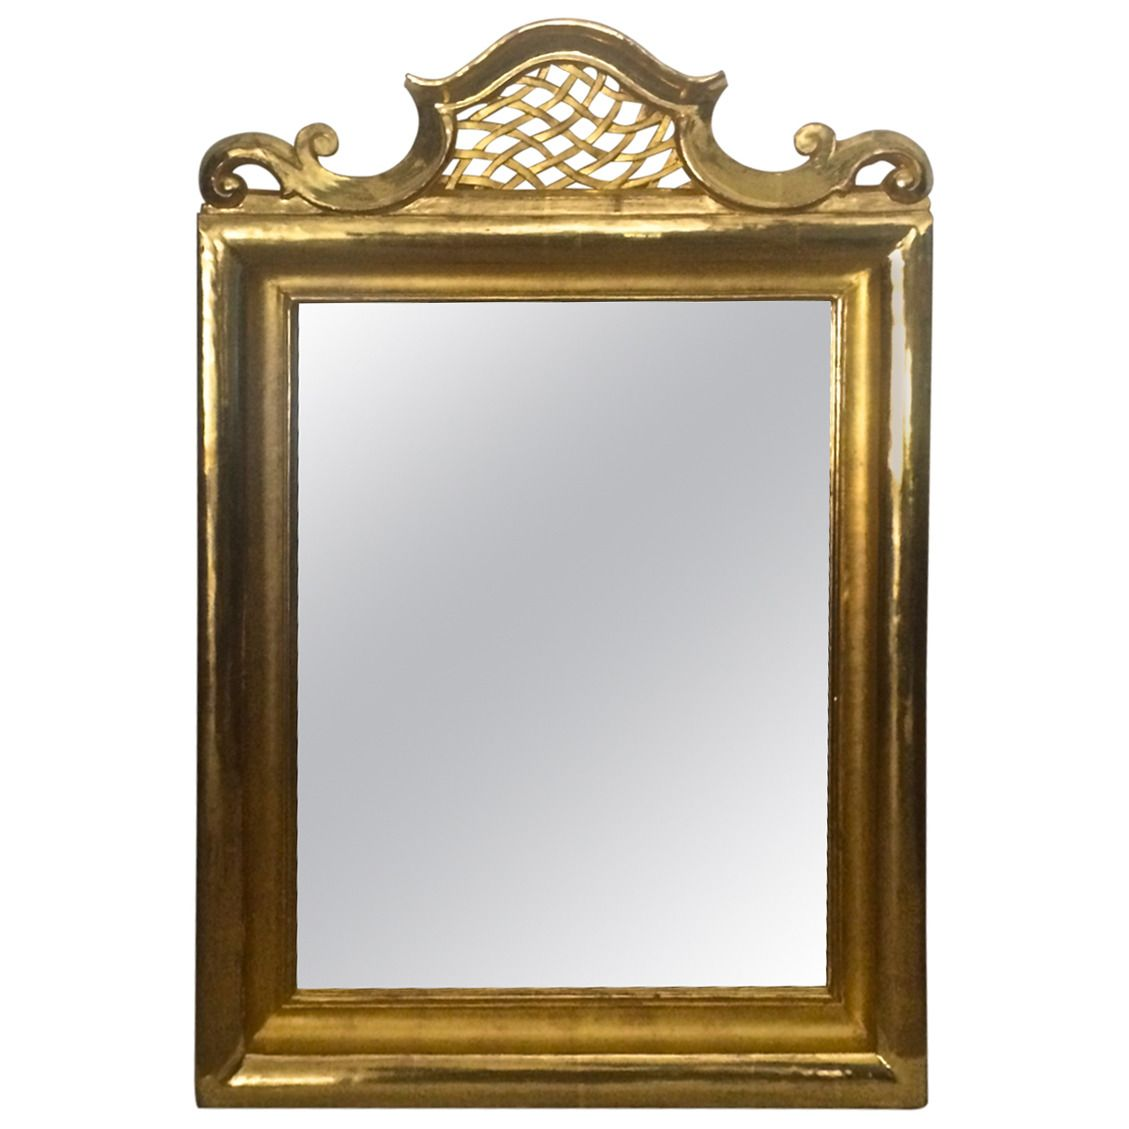 Jean Charles Moreux Superb Neo Classic Gold Leaf Carved Mirror | From a unique collection of antique and modern wall mirrors at https://www.1stdibs.com/furniture/mirrors/wall-mirrors/